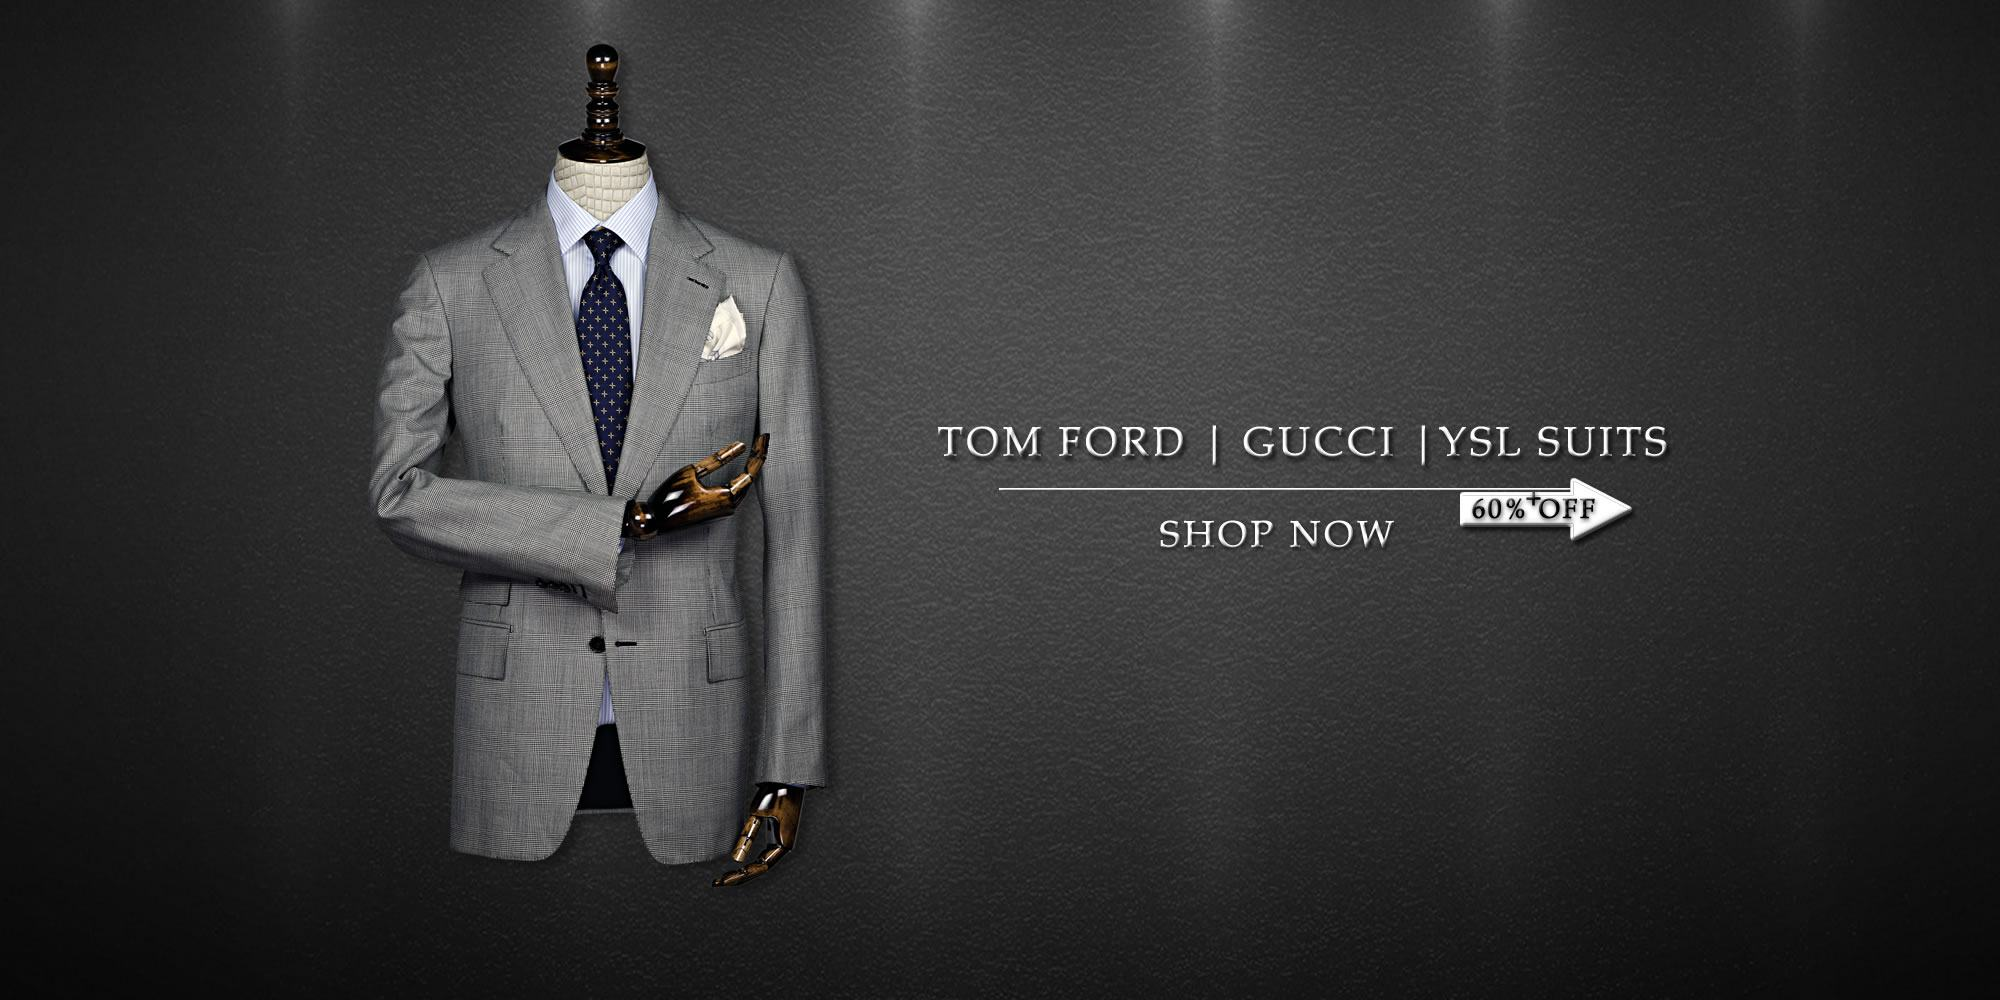 GUCCI TOM FORD YSL SUITS SALE IN VANCOUVER BC